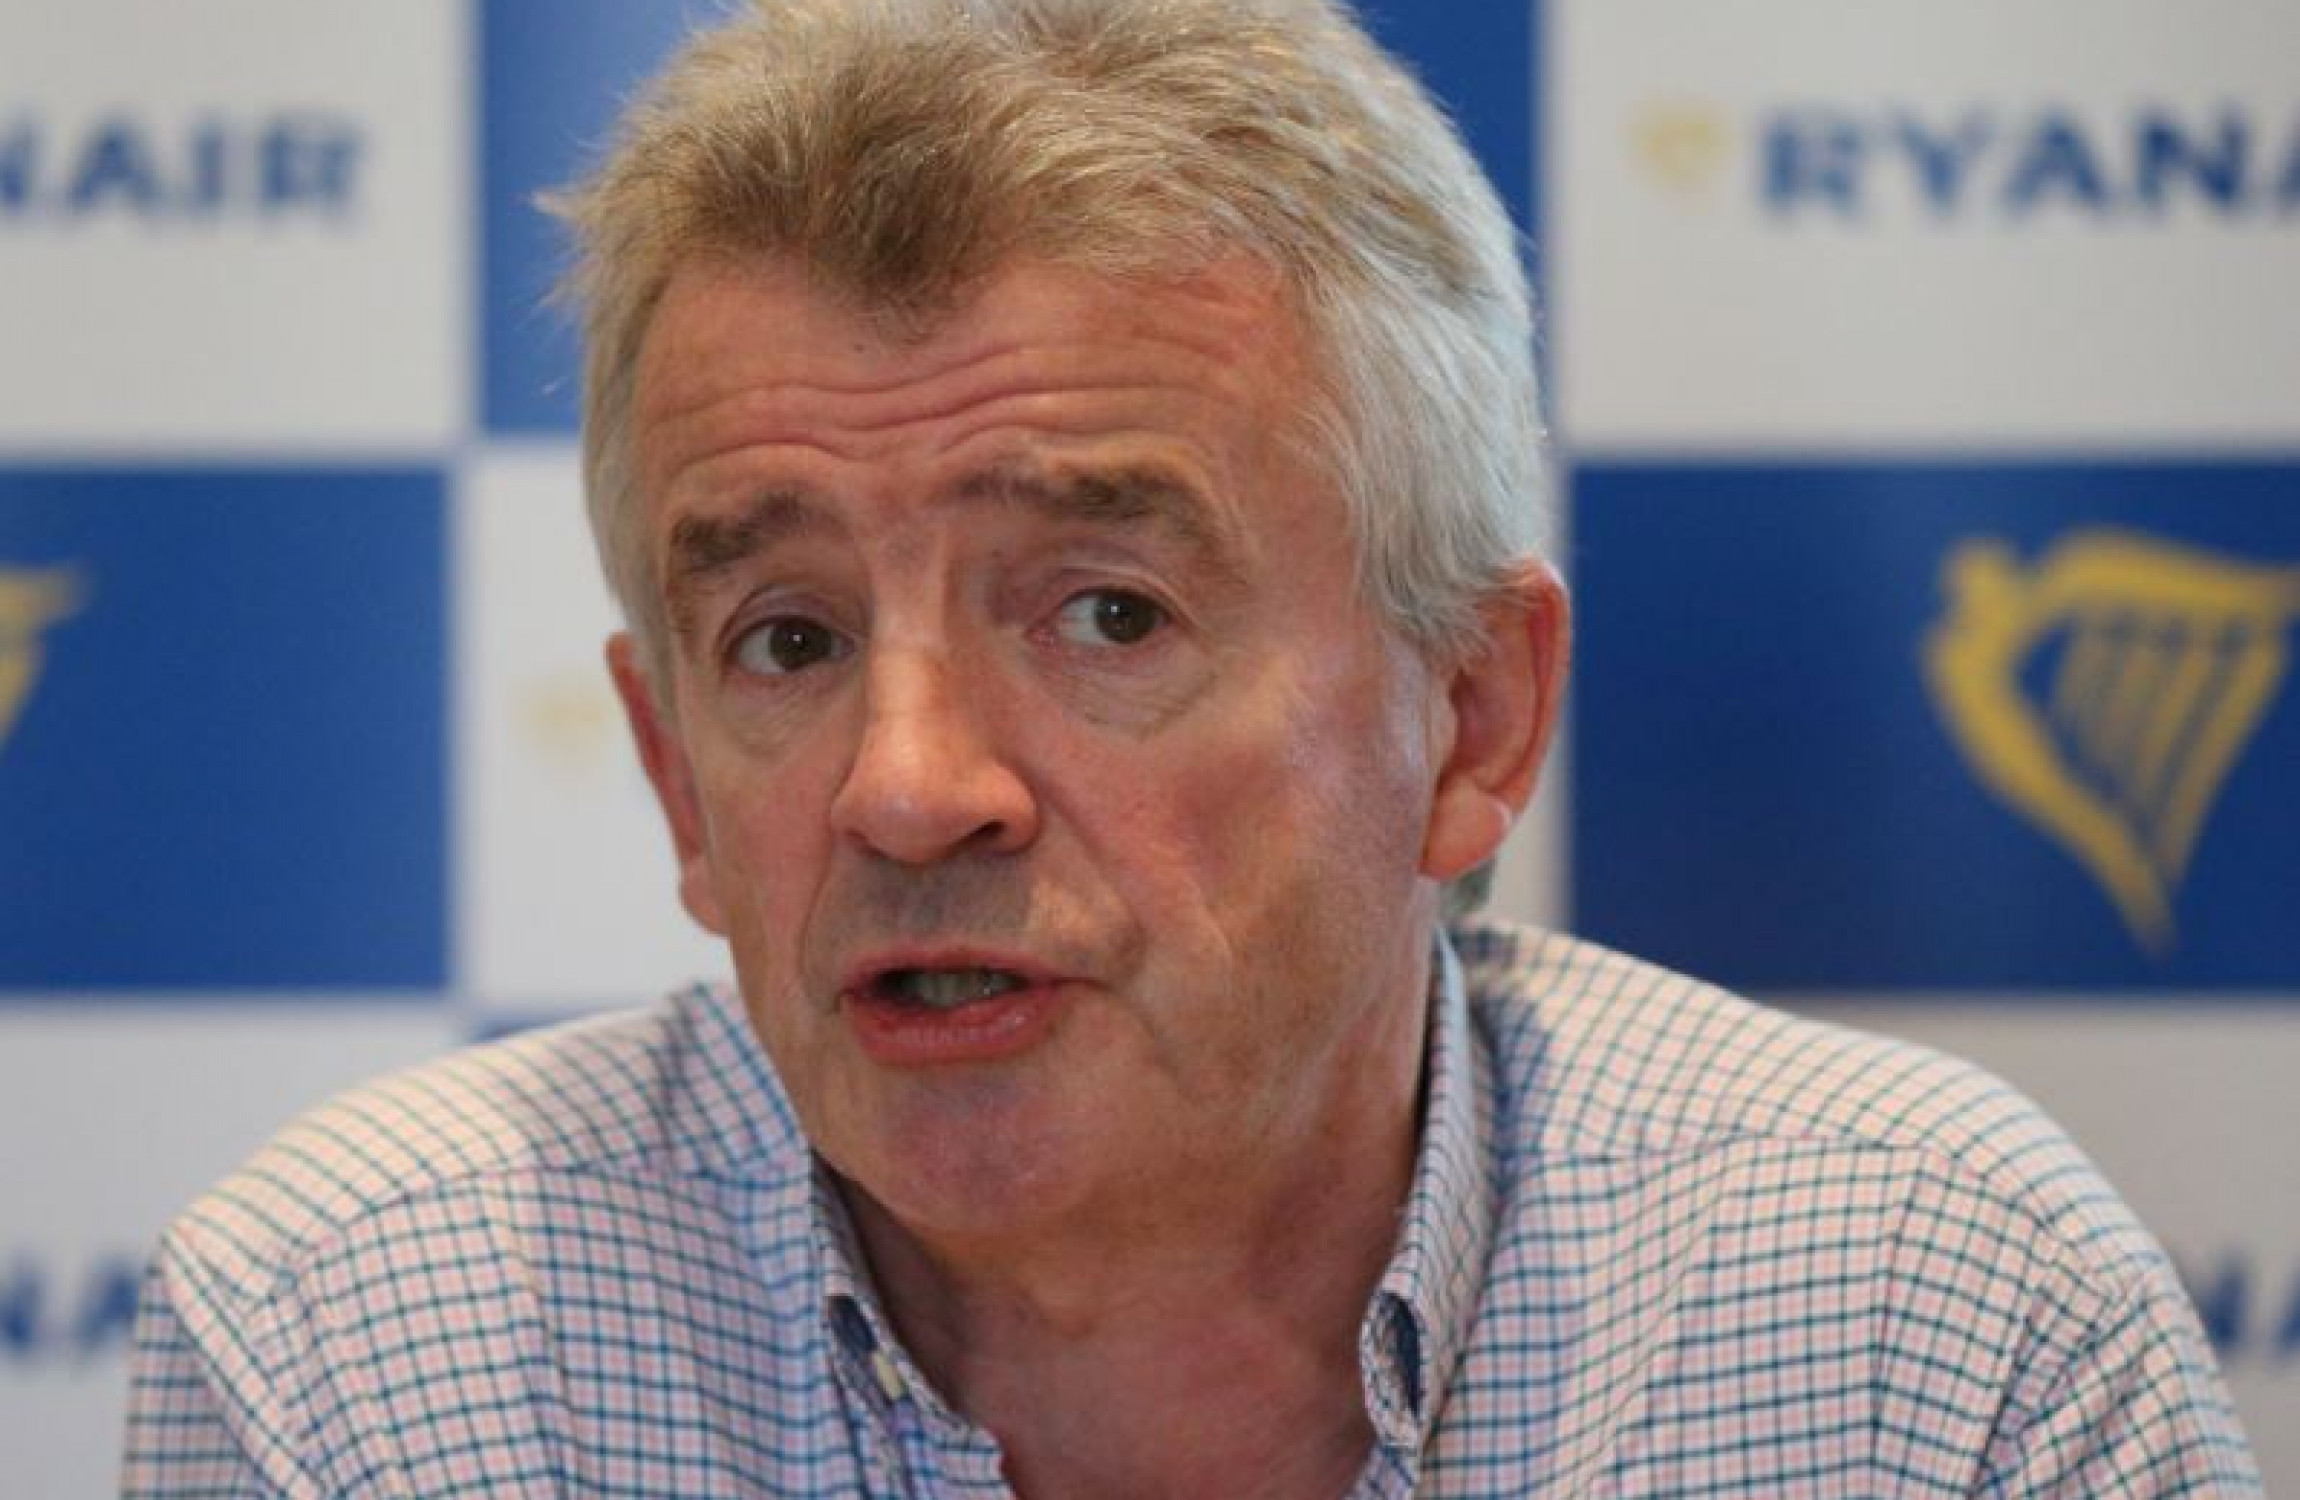 Ryanair cuts carry-on baggage allowance to just one handbag